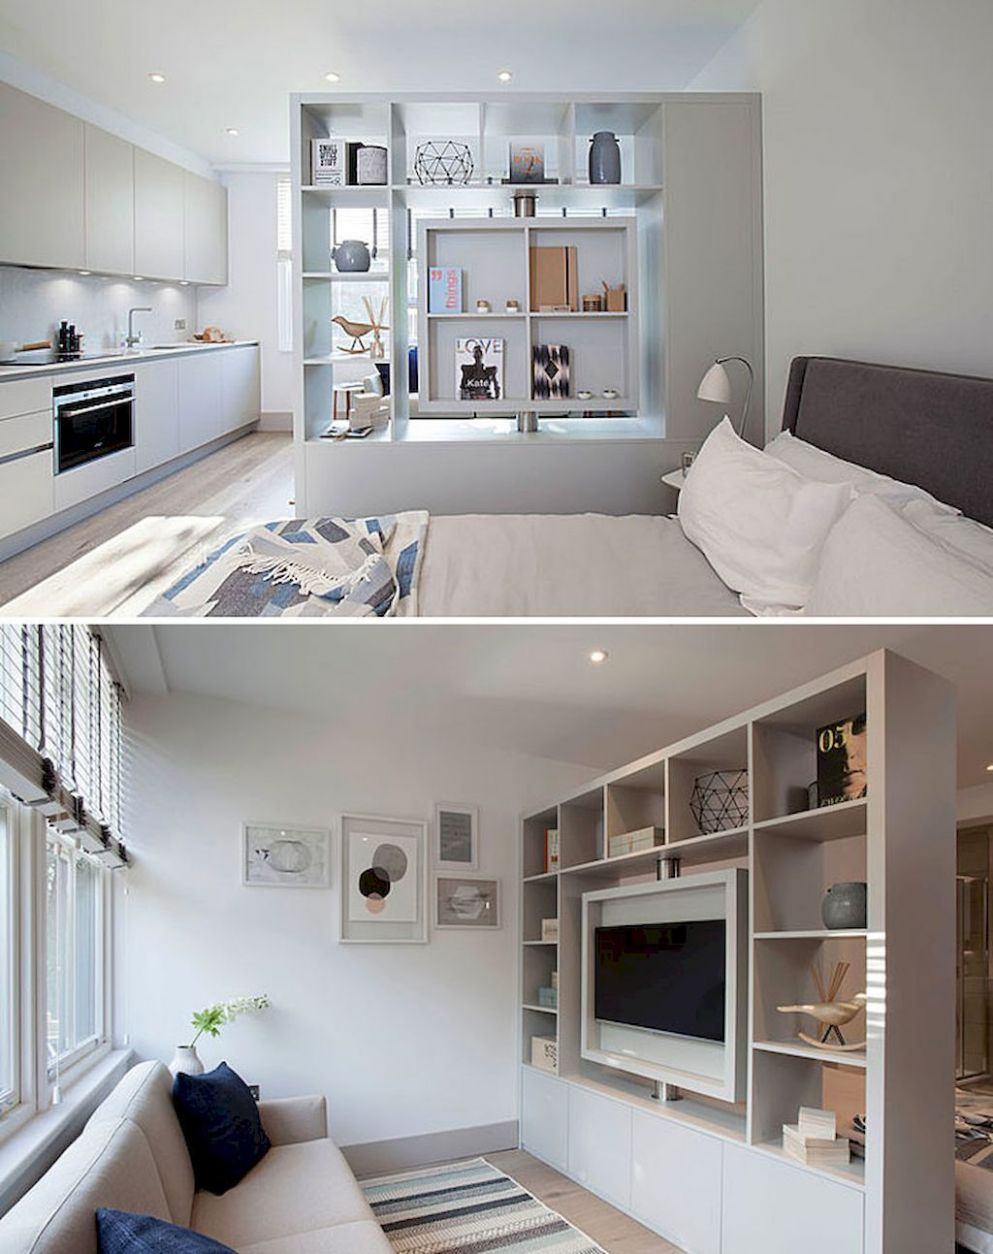 Bedroom Decorating Ideas for Rental Apartment Part 11 | Small ..